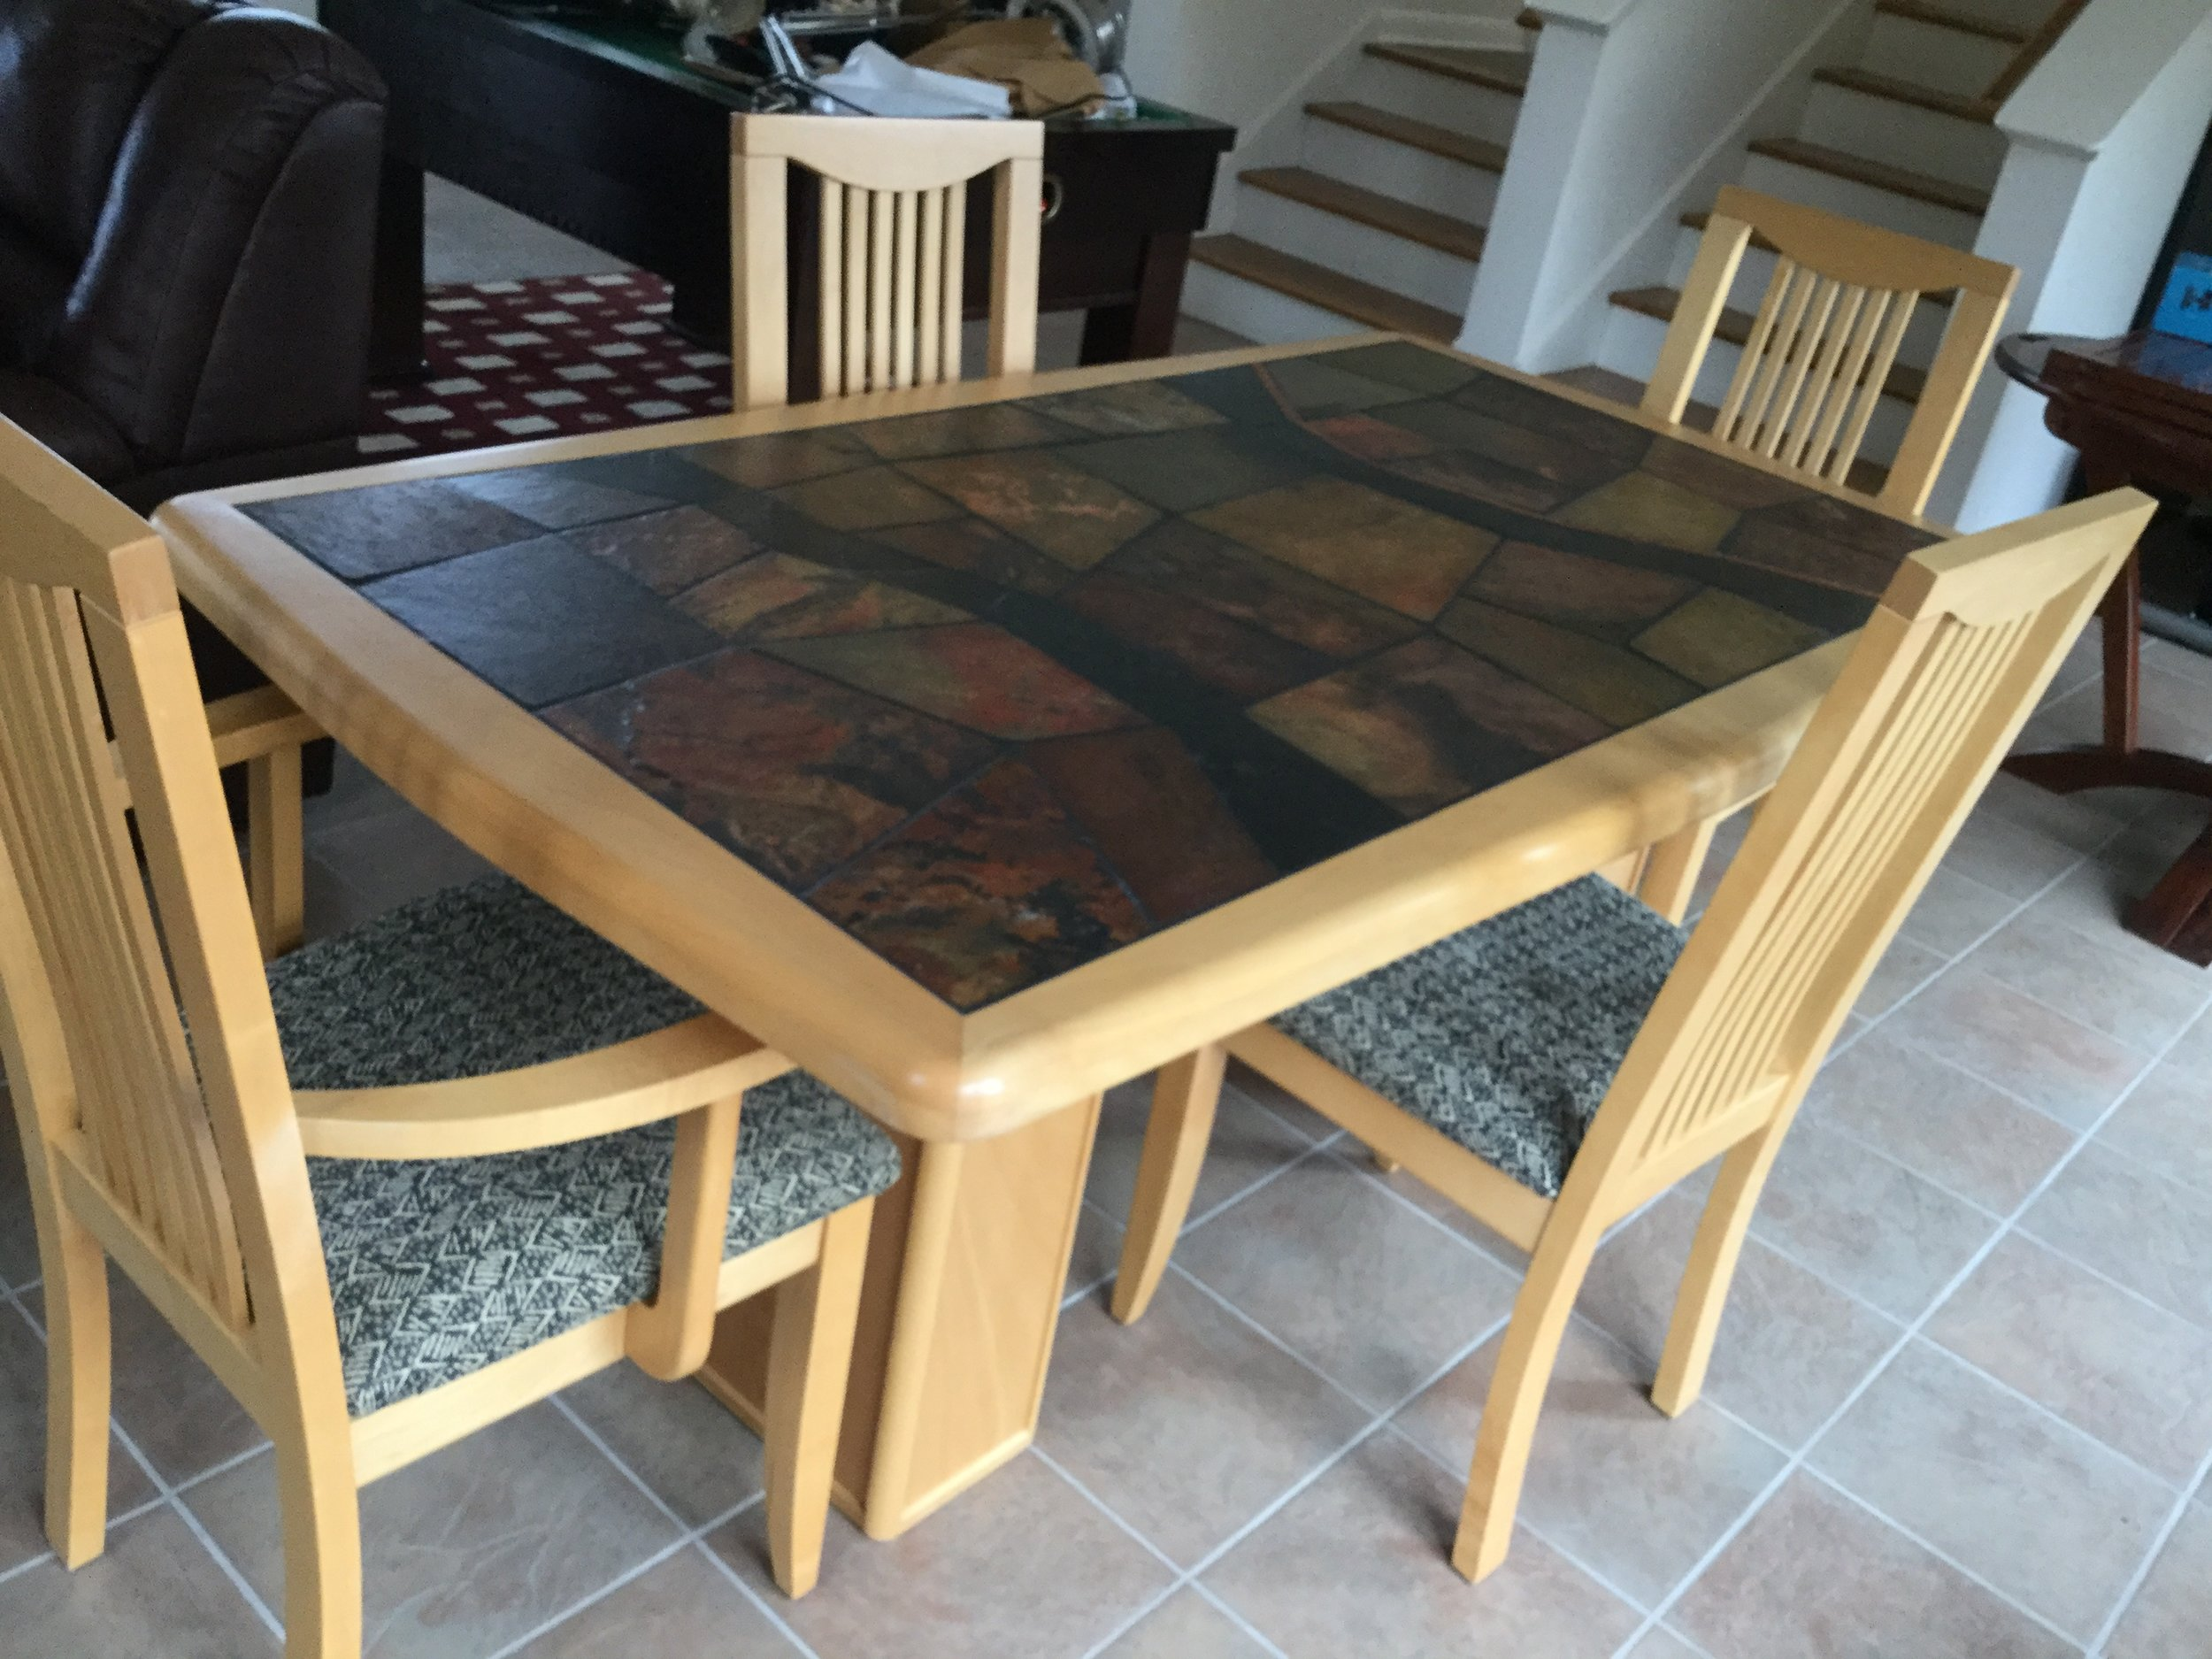 Slate-top table and 4 chairs